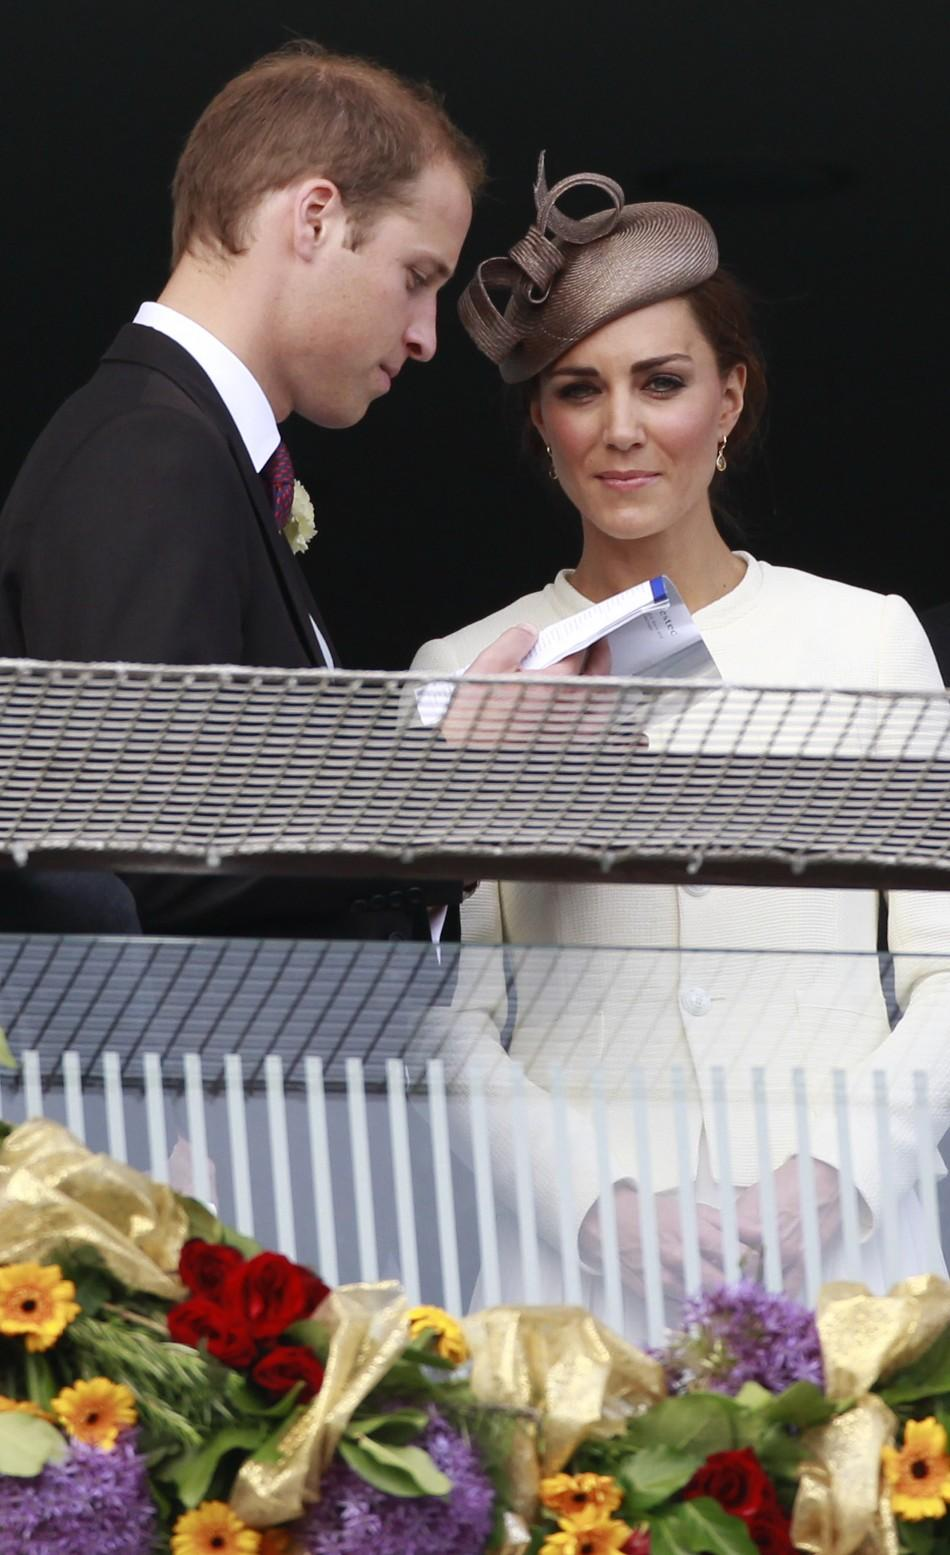 Britain's Prince William and Catherine, Duchess of Cambridge, watch the racecourse after Queen Elizabeth's horse Carlton House lost the Epsom Derby at Epsom Racecourse in southern England